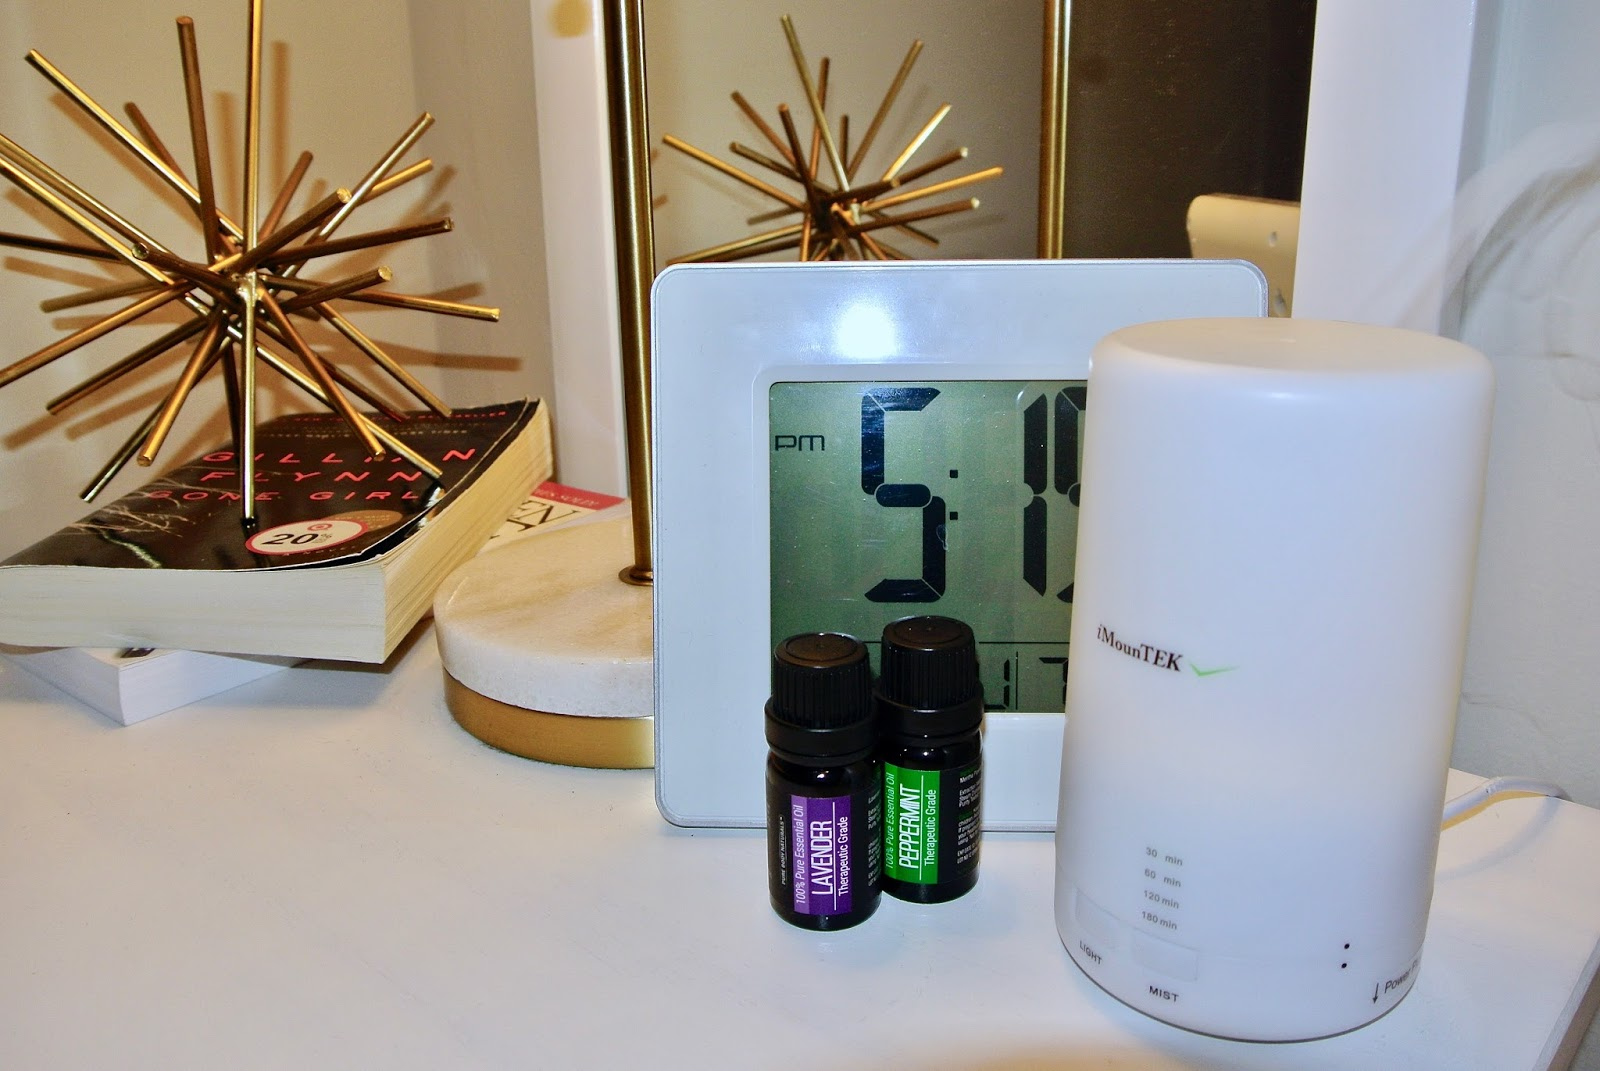 Turn on oil diffuser and relax